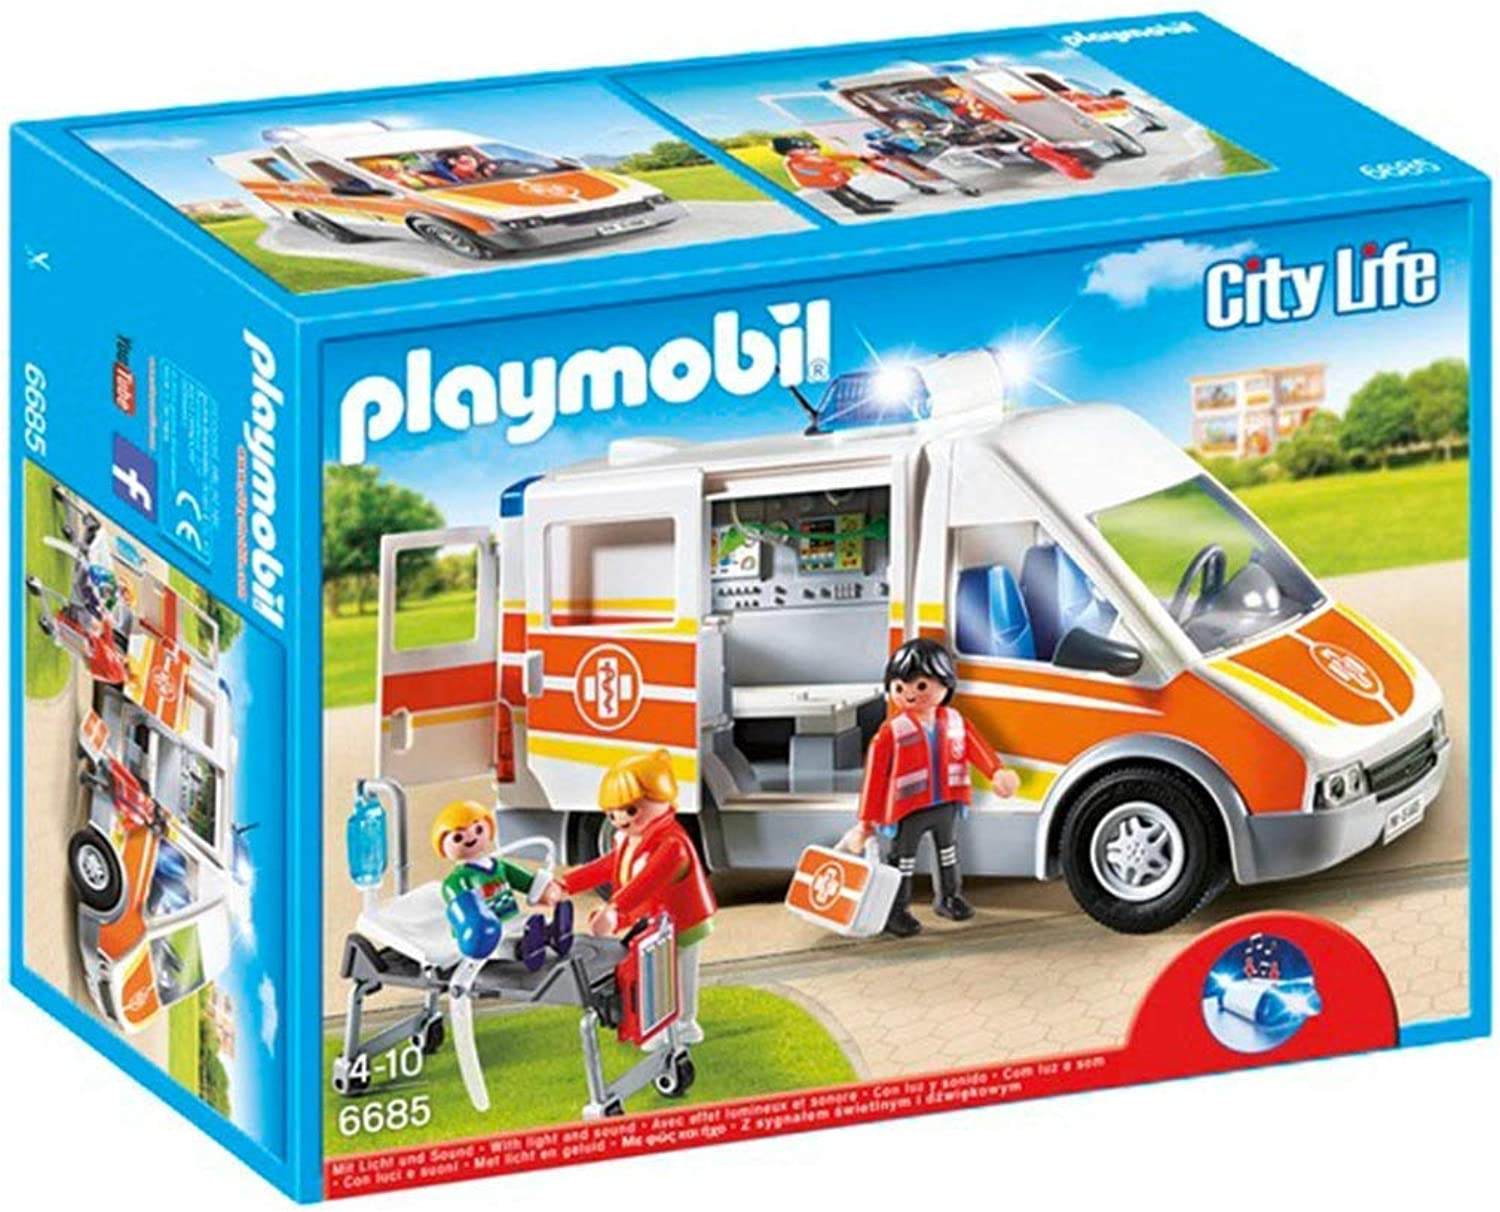 Playmobil – City Live Ambulance with Lights and Sound, MultiColour (6685)